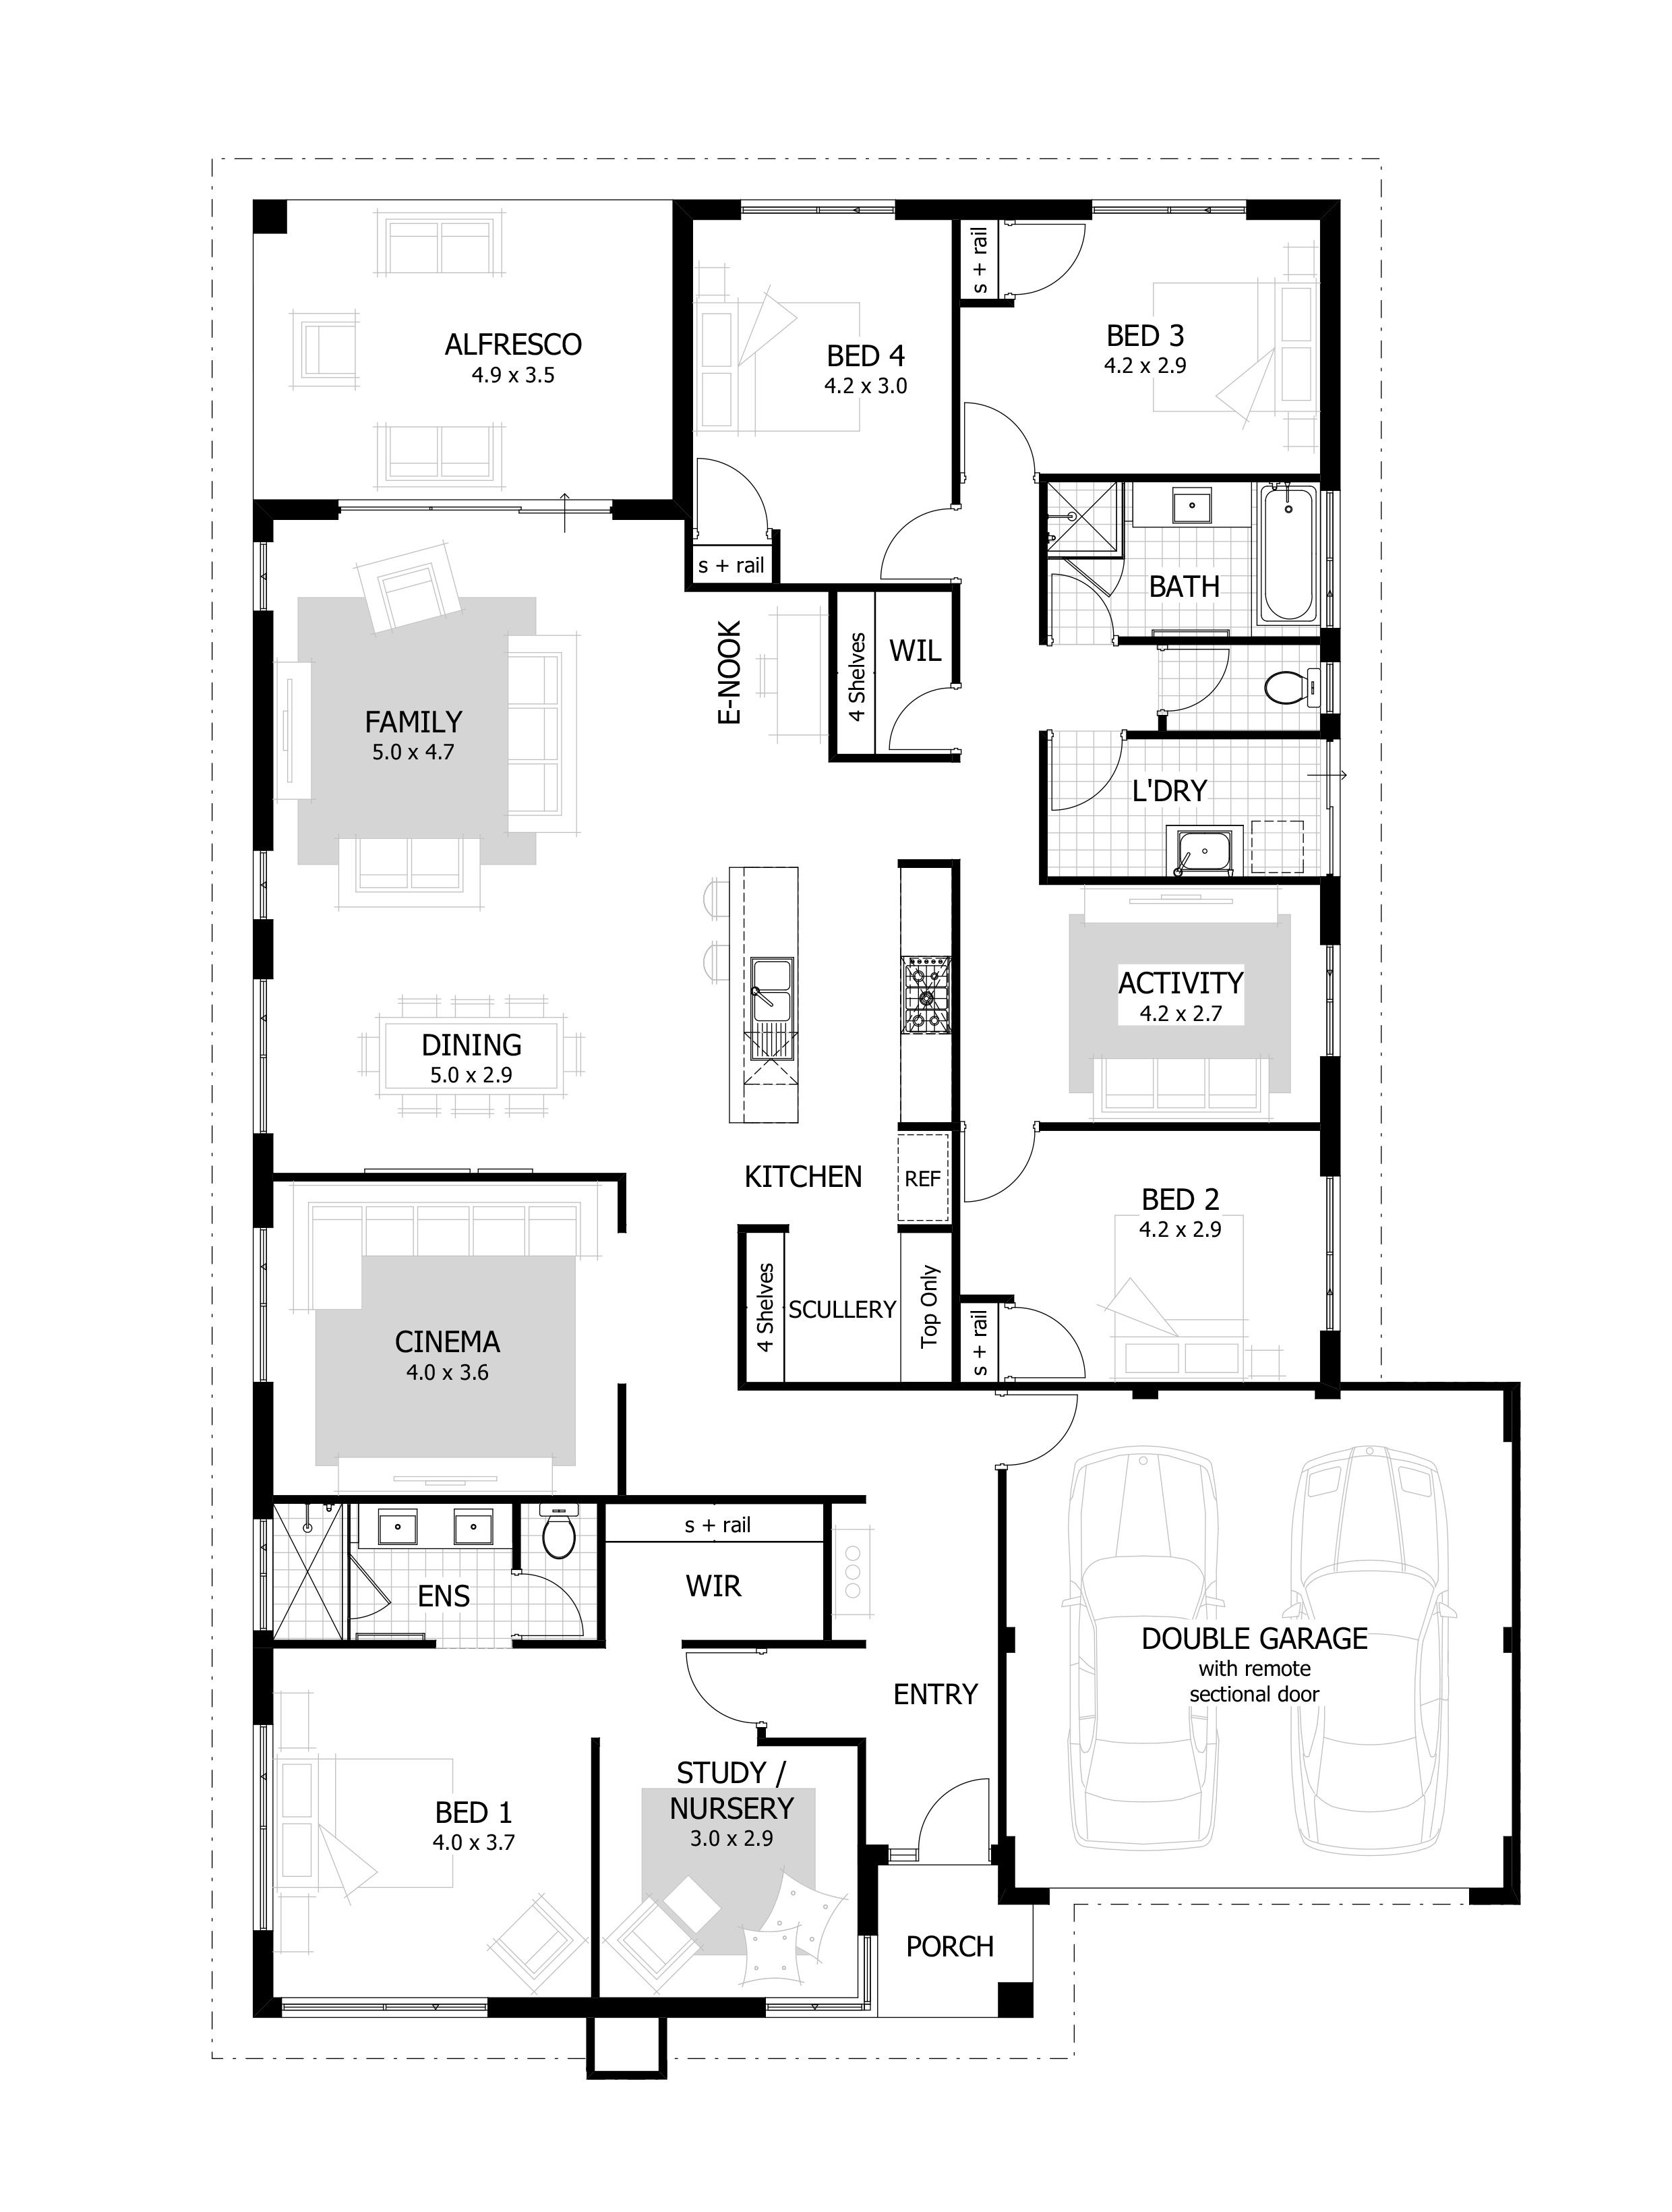 4 Bedroom House Plans Home Designs Celebration Homes 4